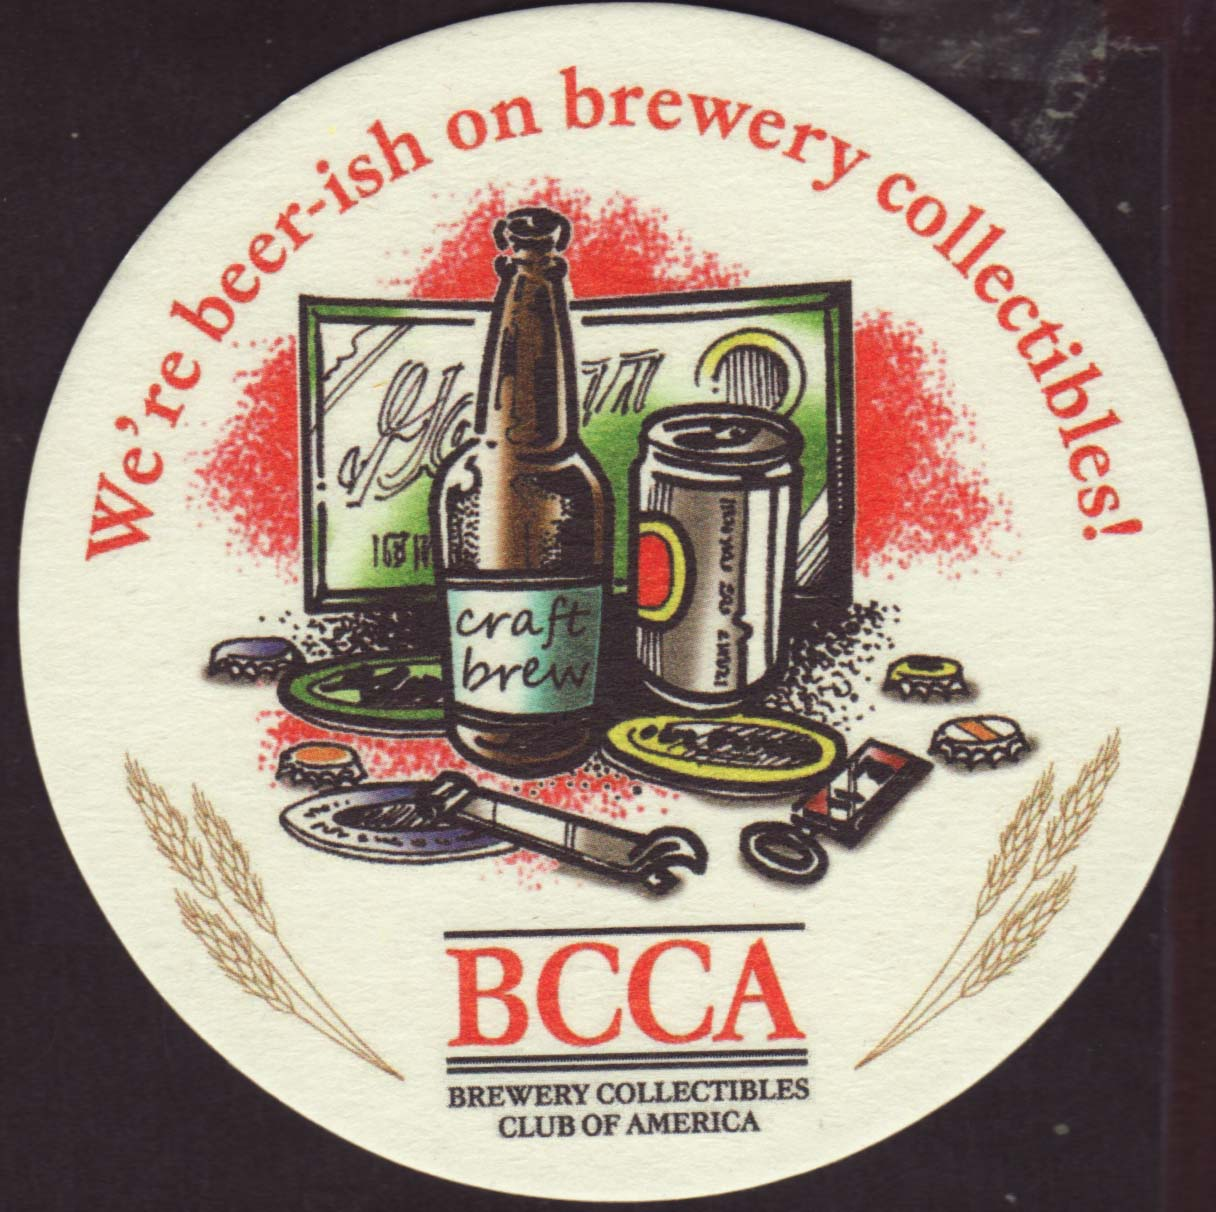 Mat BCCA BREWERY COLLECTIBLES CLUB OF AMERICA beer COASTER